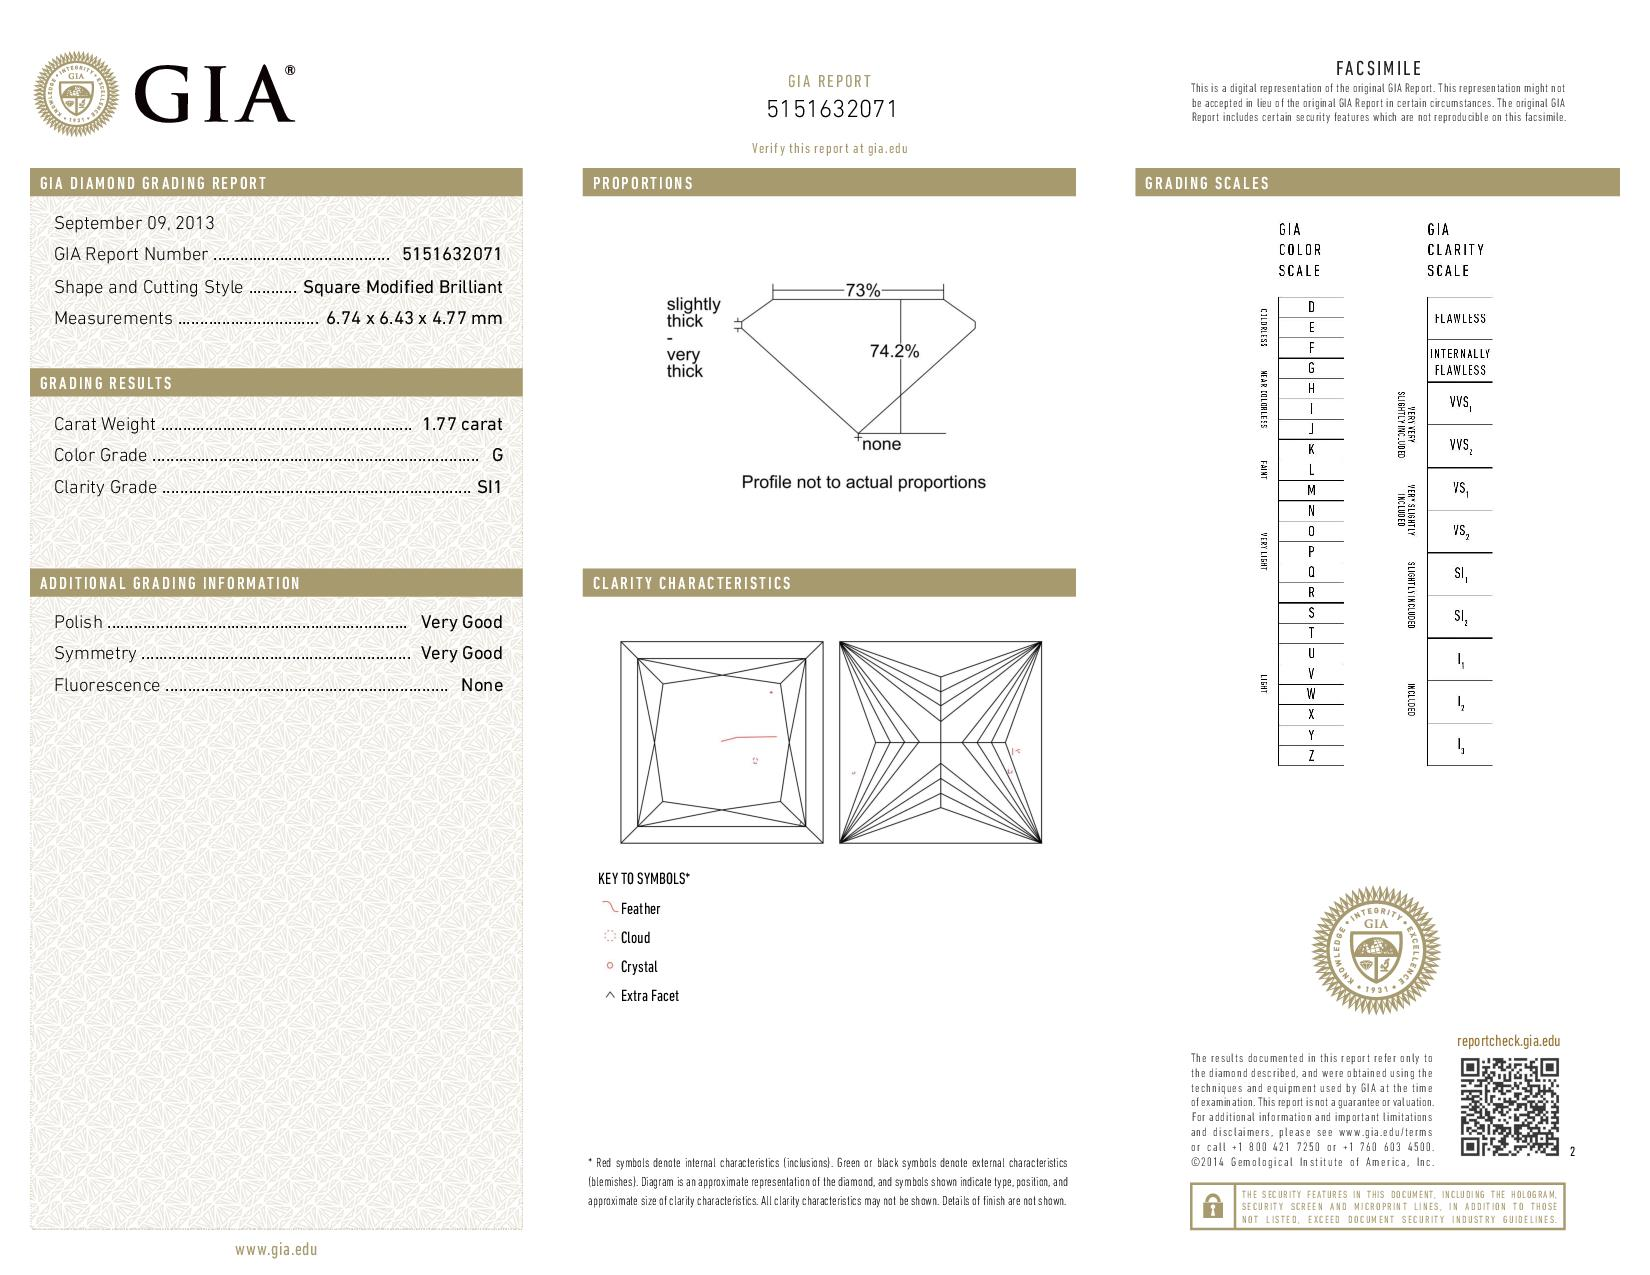 This is a 1.77 carat princess shape, G color, SI1 clarity natural diamond accompanied by a GIA grading report.